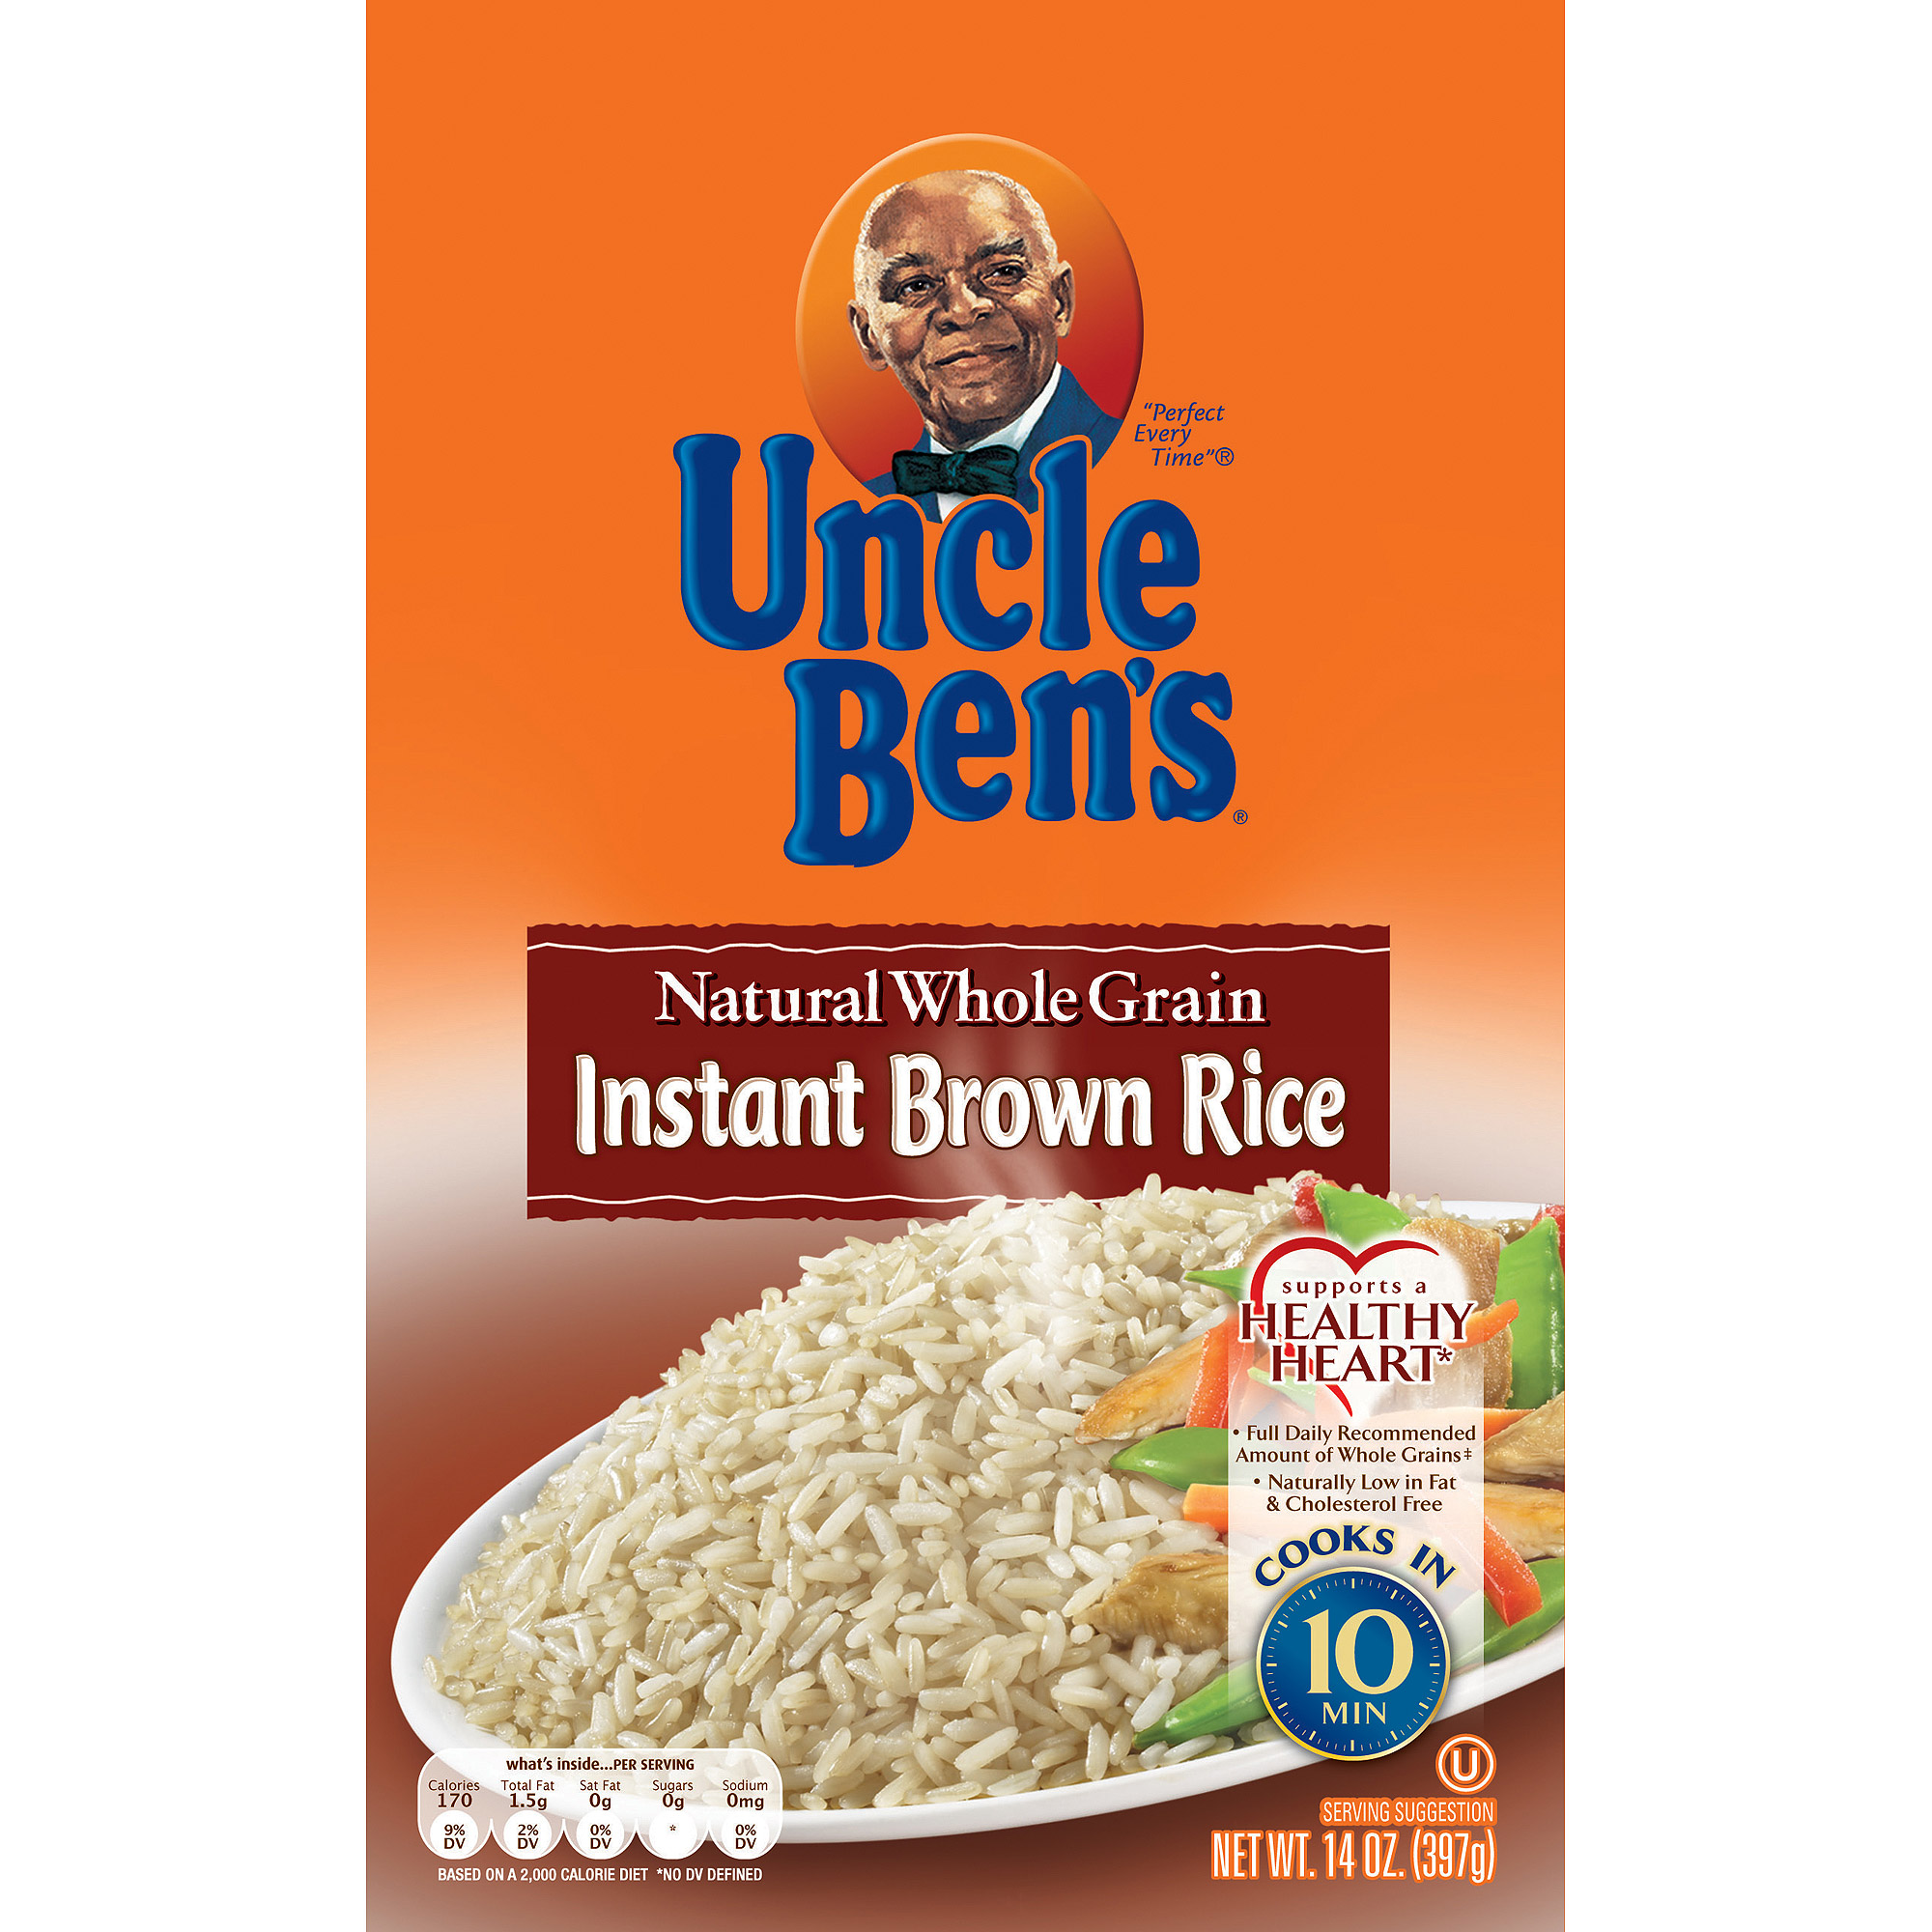 Uncle Ben's Whole Grain Instant Brown Rice Fast & Natural, 14 oz